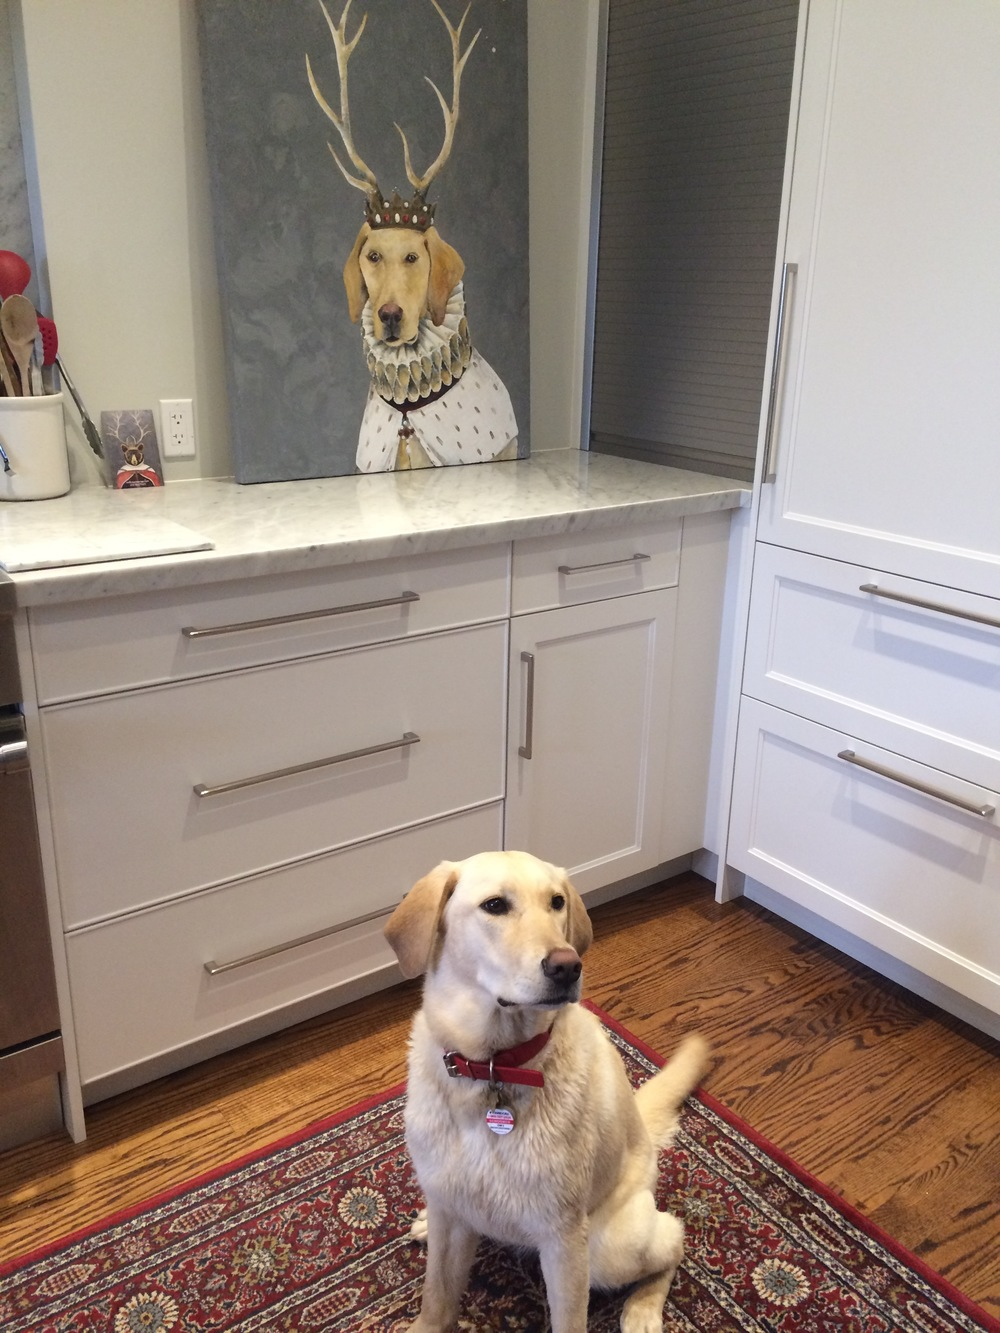 Here is the lovely Schooner posing with her portrait where it ill eventually hang in their kitchen....